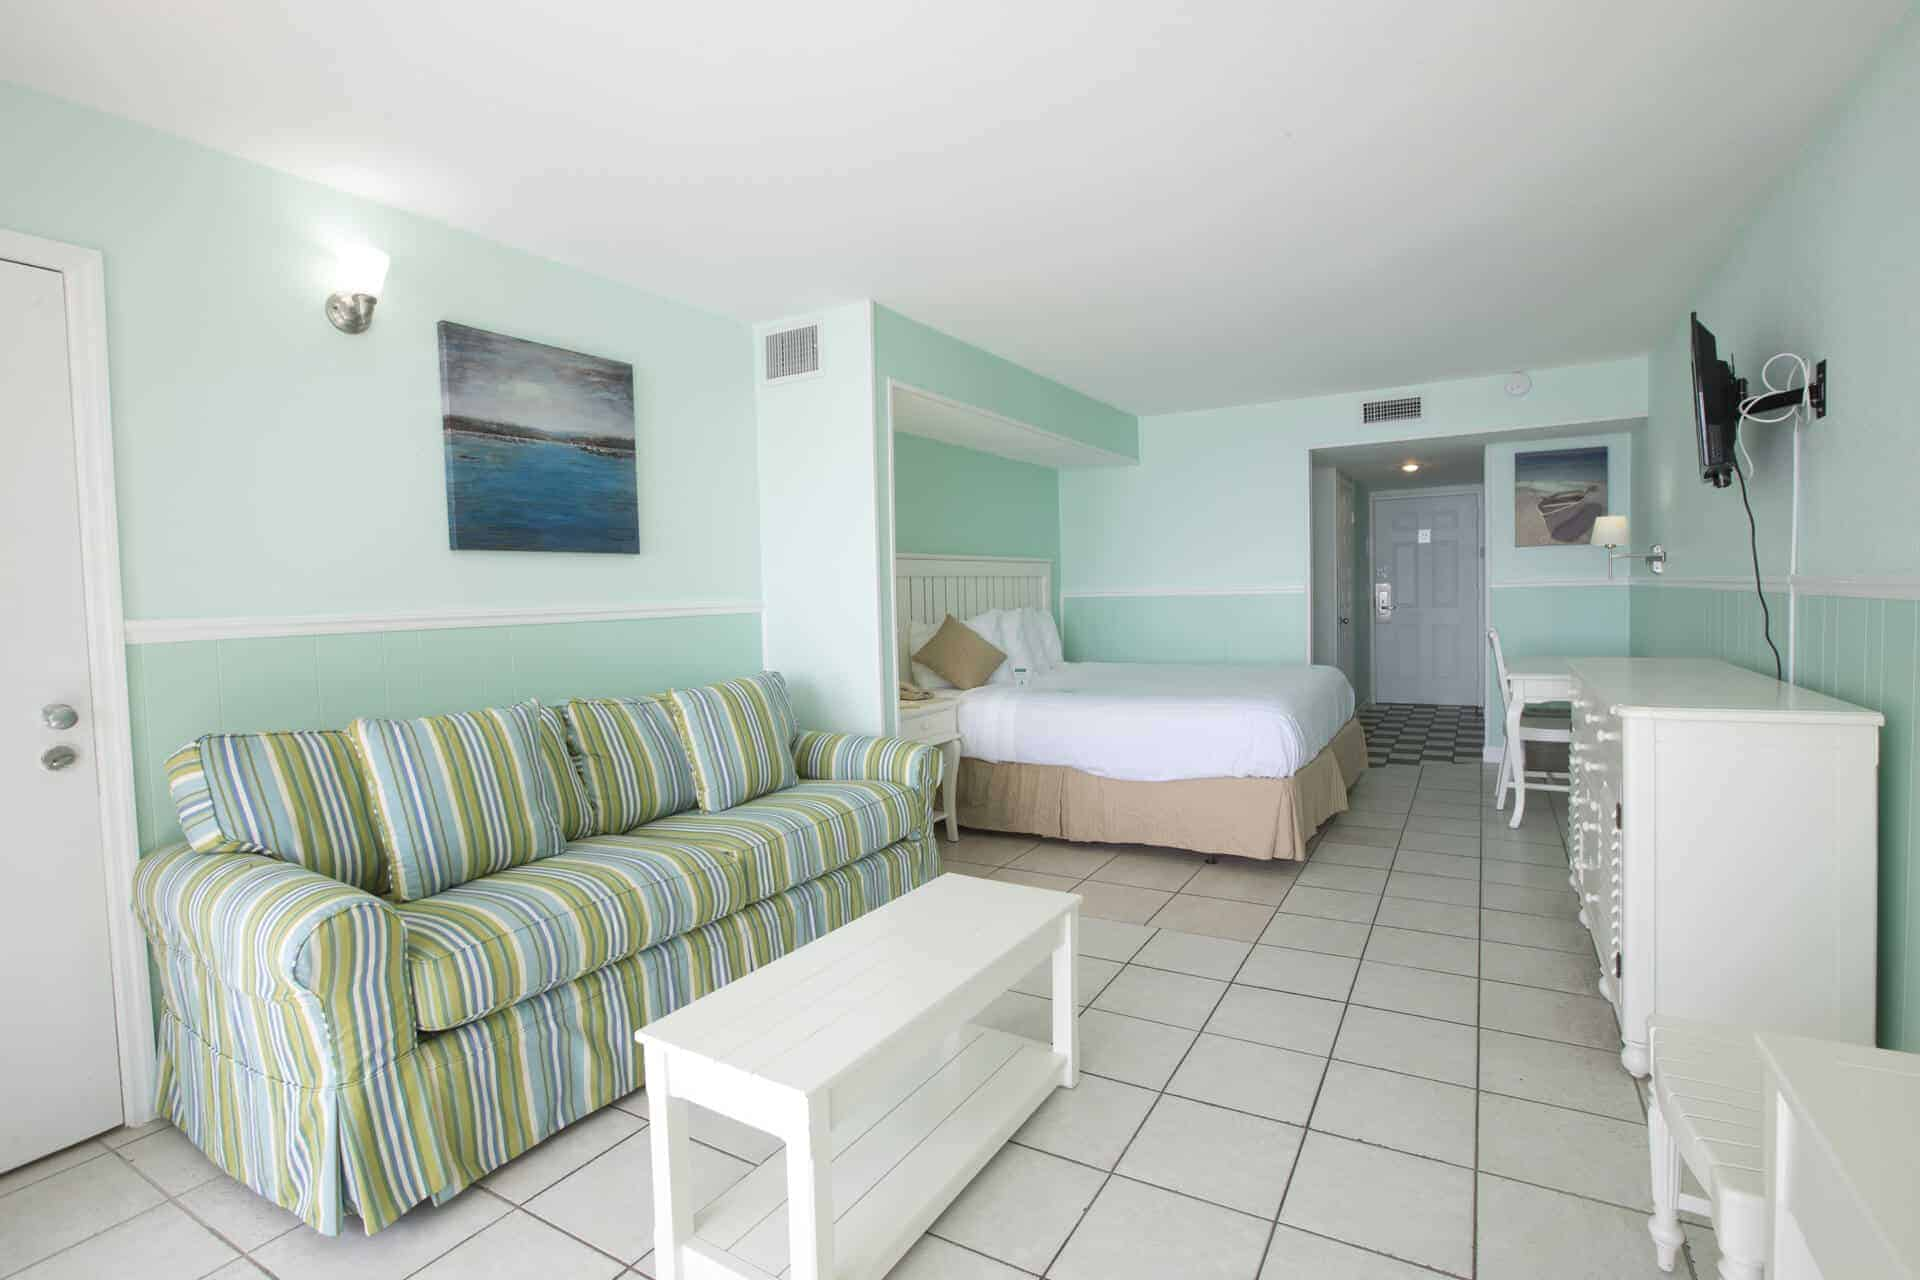 Beachfront Fort Myers Beach Florida accommodations Lani Kai Island Resort